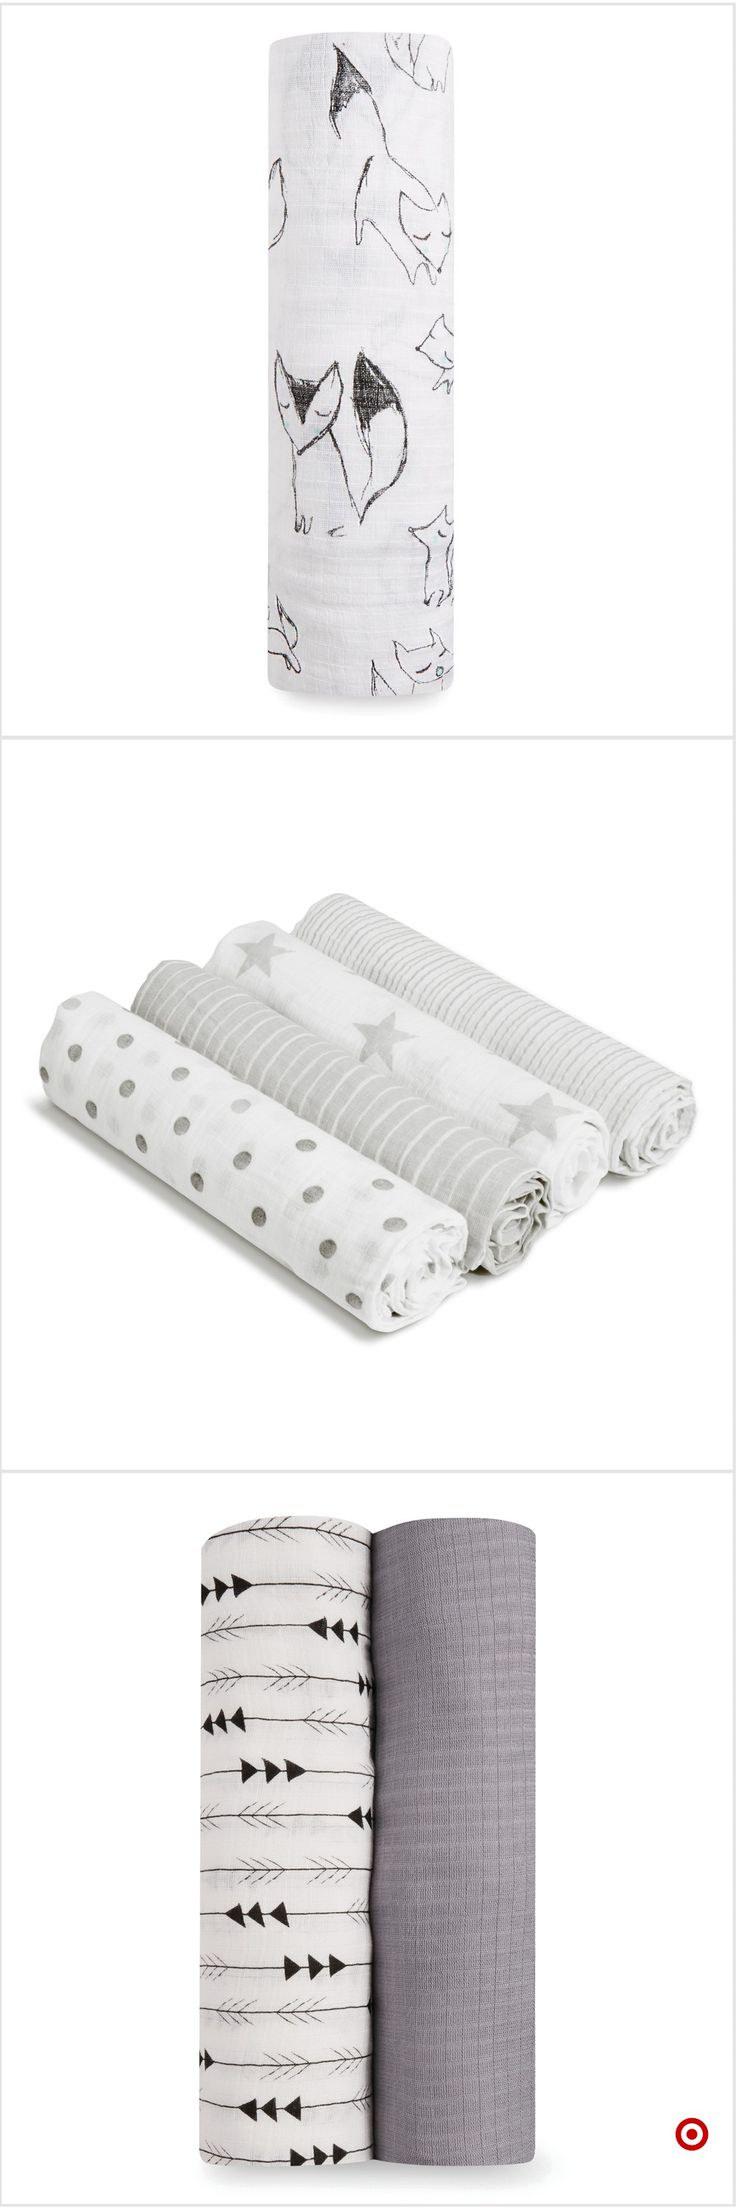 Shop Target for swaddle blanket you will love at great low prices. Free shipping on orders of $35+ or free same-day pick-up in store.